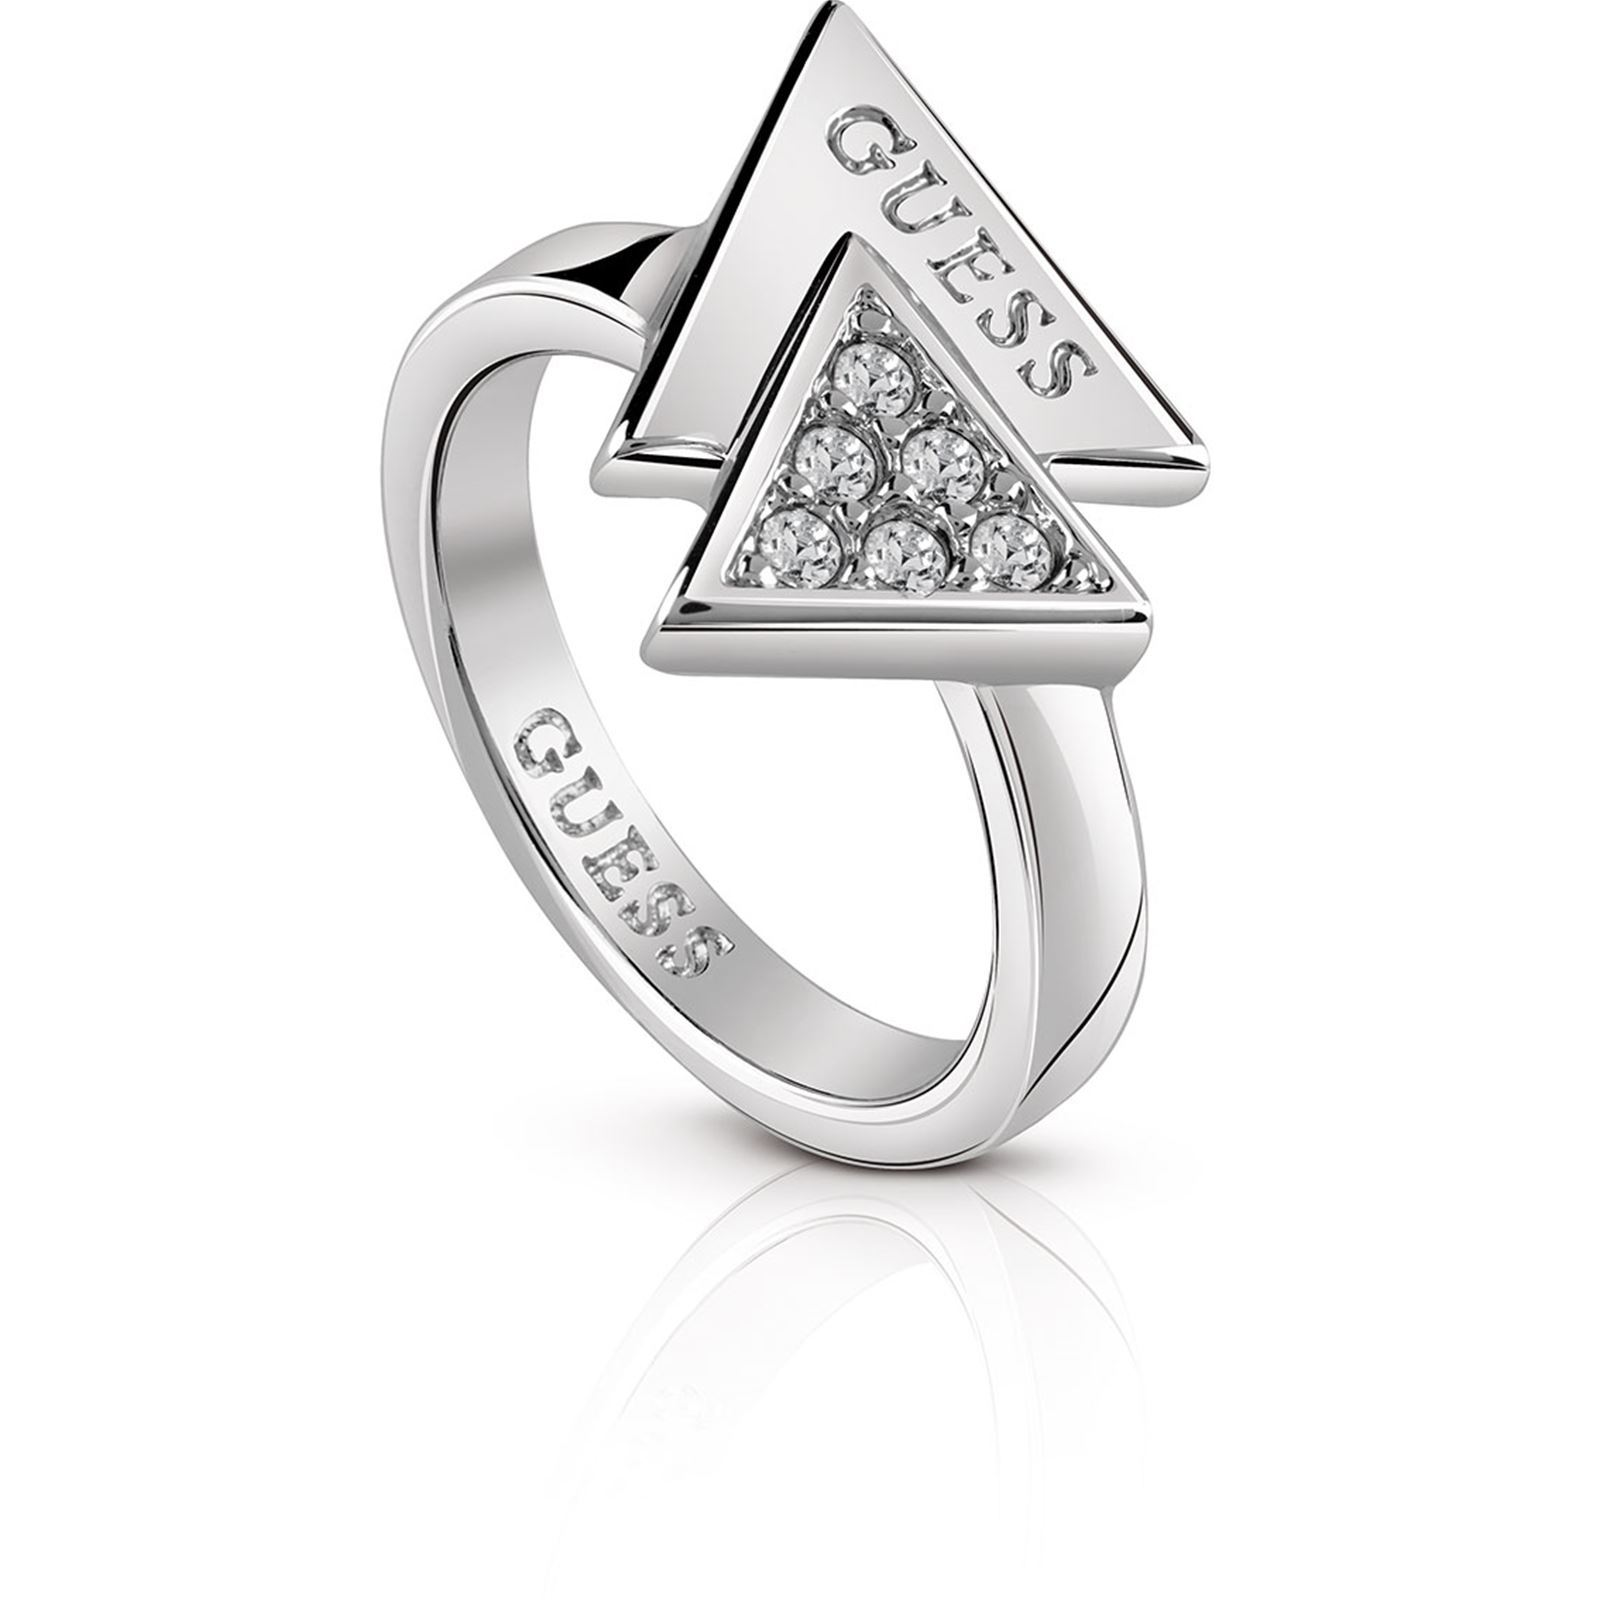 Guess Bague triangle - argent